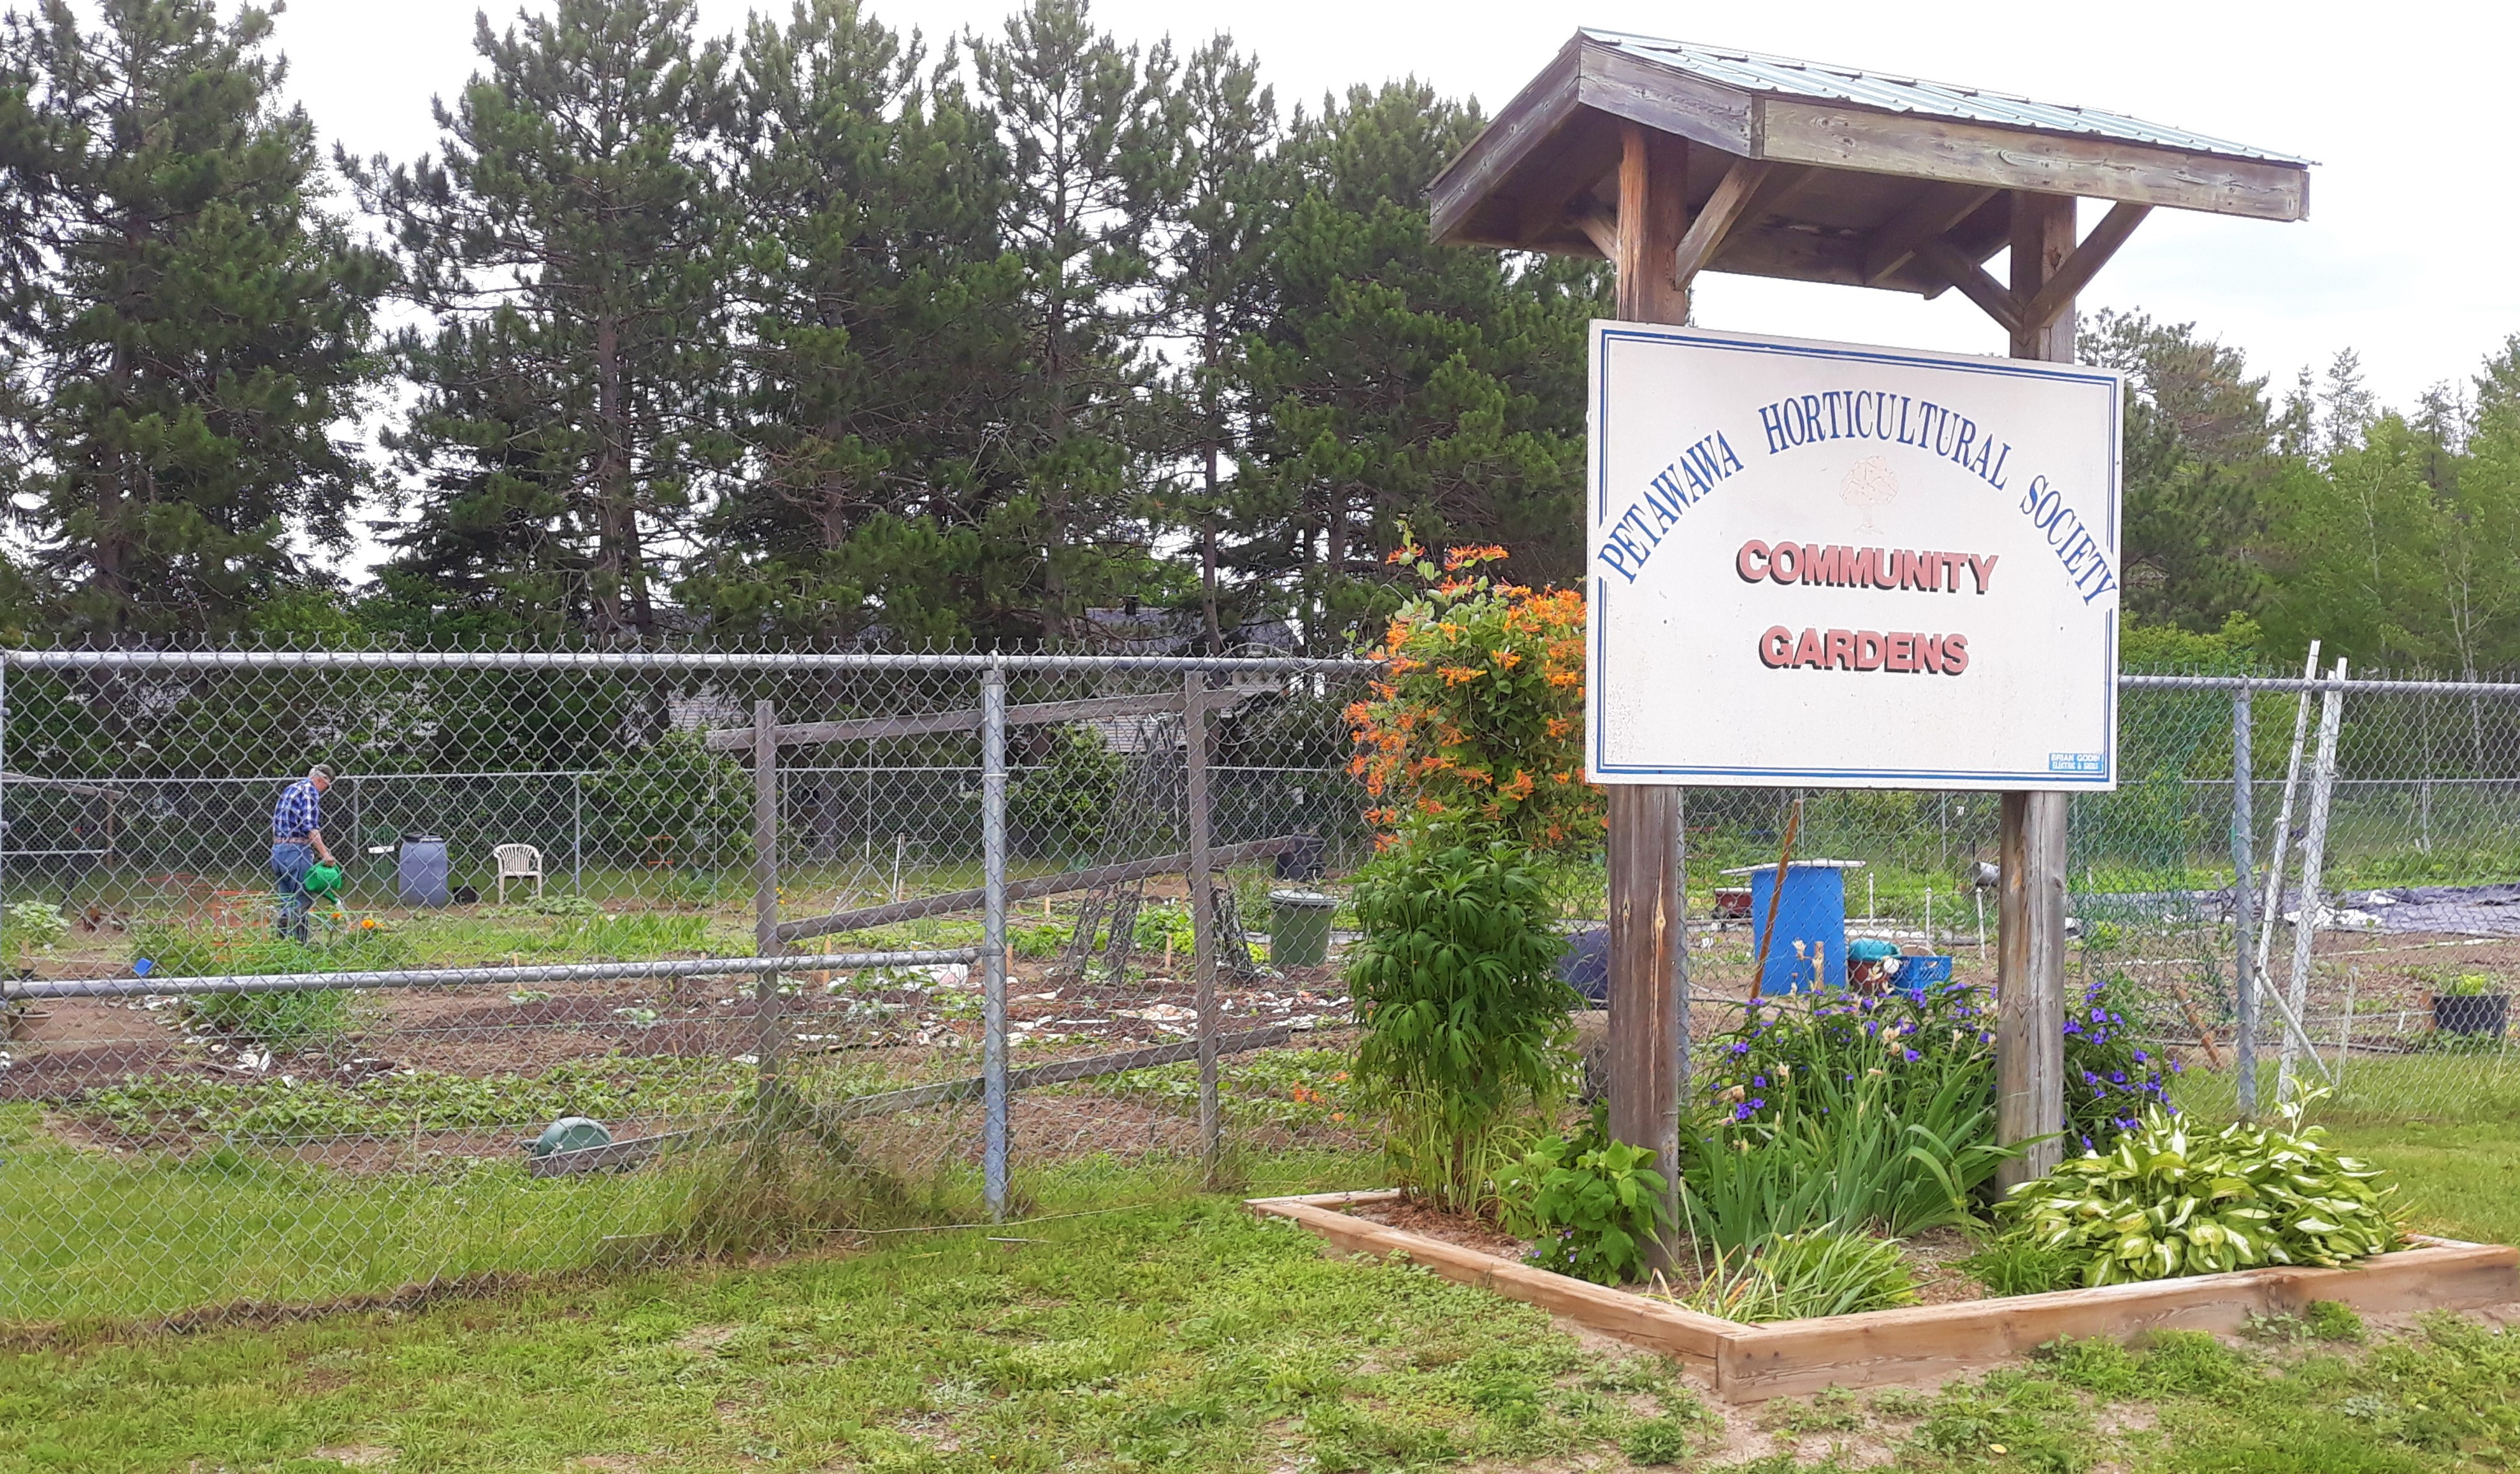 Image of front sign and garden plots at the Community Garden